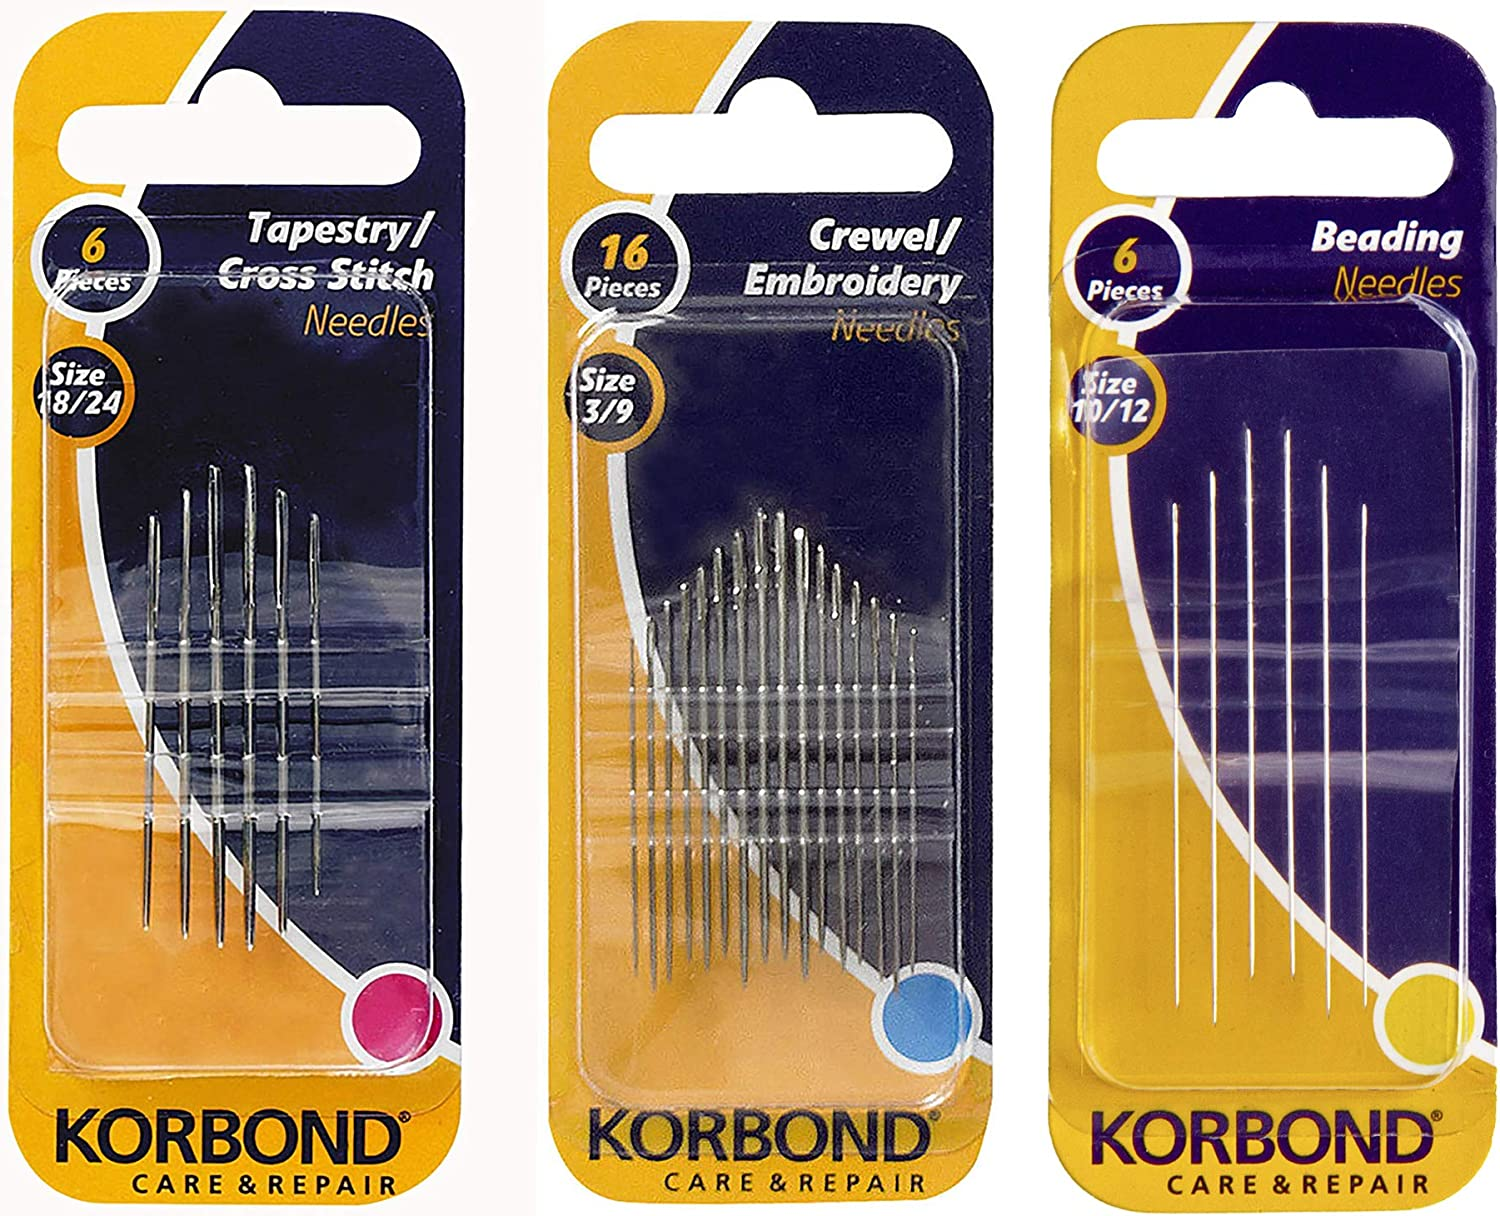 Medium Korbond 6-Piece Tapestry//Cross Stitch Needles//Beading Needles and 16-Piece Crewel//Embroidery Needles /& Creations 10inch Wooden Embroidery Hoop